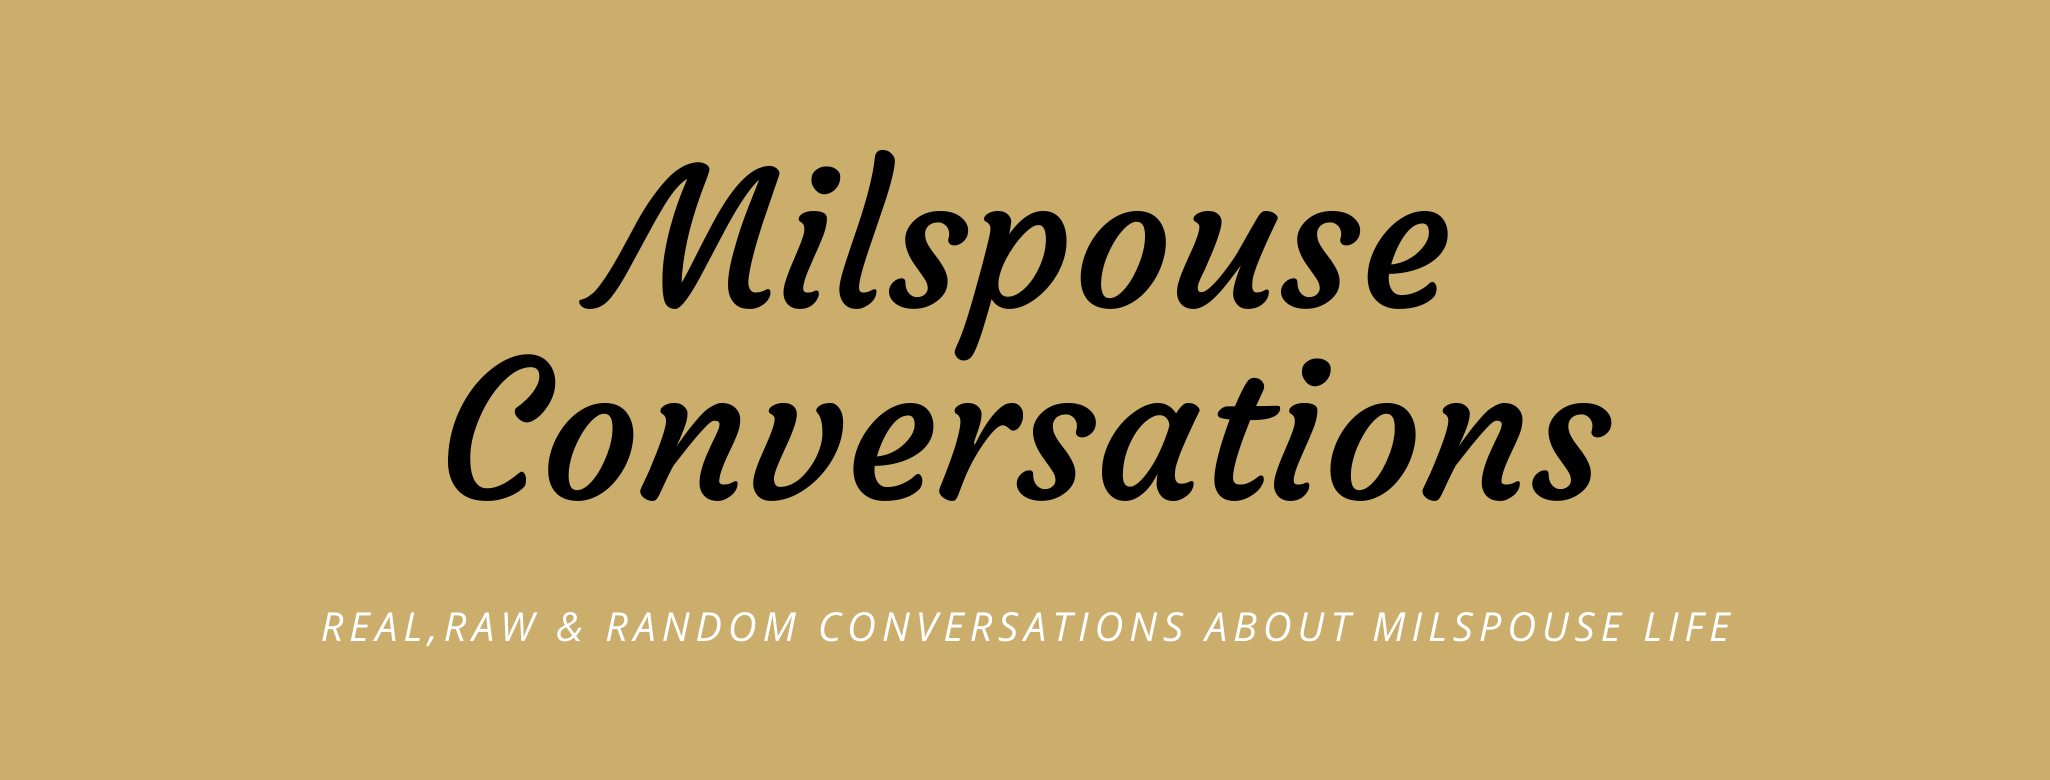 Real, Raw & Random Conversations About Milspouse Life